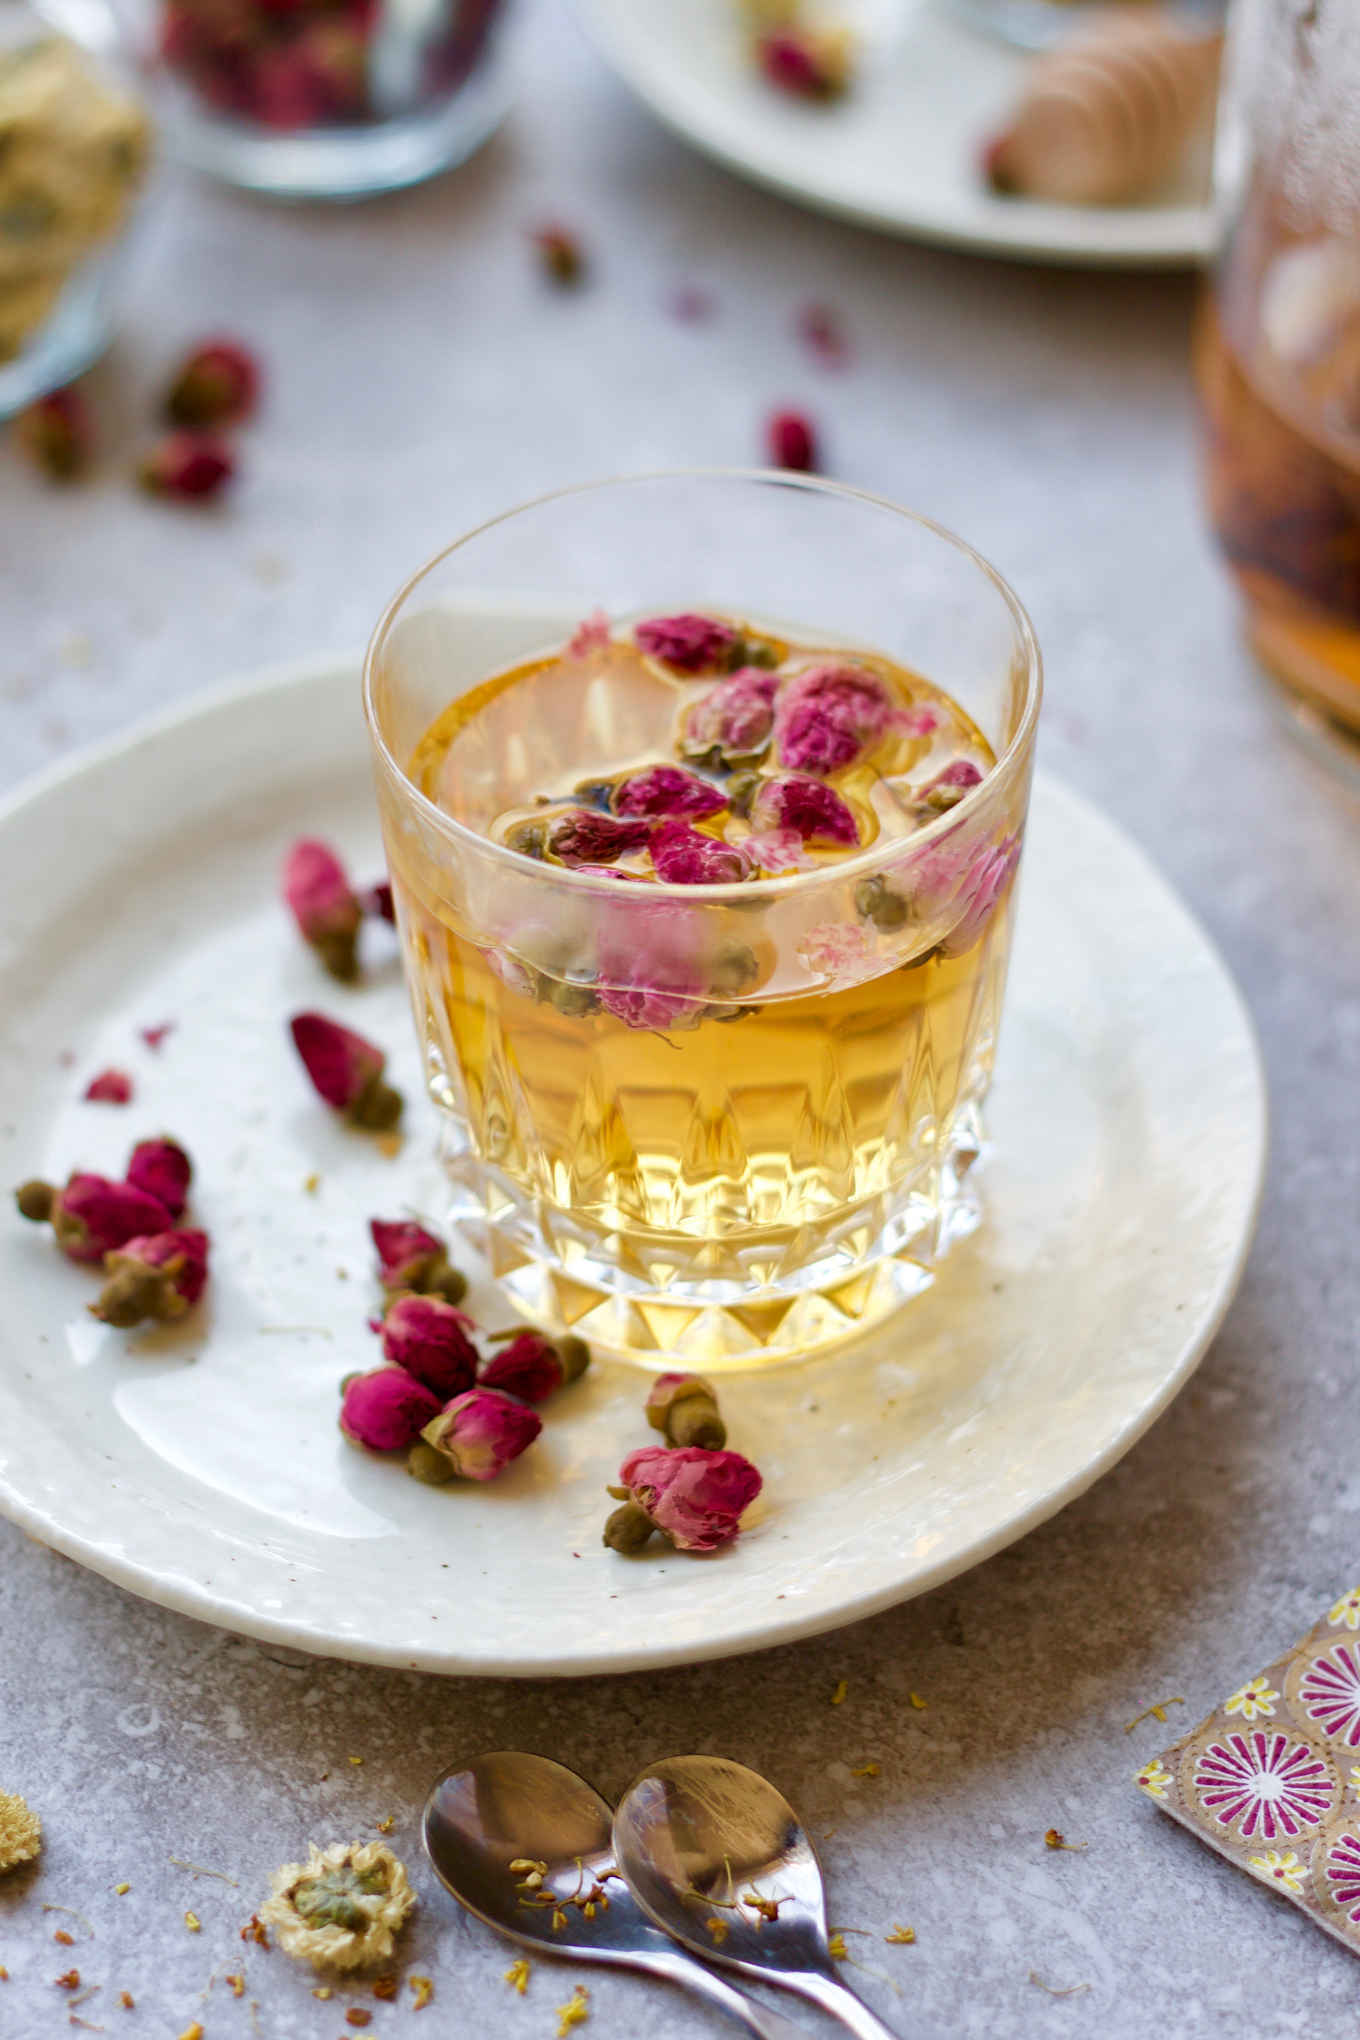 Rosebud white tea: option #2 of 3 floral teas. Try these 3 easy DIY floral teas. Chrysanthemum, rosebud and osmanthus are popular herbal flowers used in tea infusions in China. These 3 herbal flower and tea pairings will dress up your traditional teas, while unleashing the beautiful aromas and healing benefits of the herbal flowers.